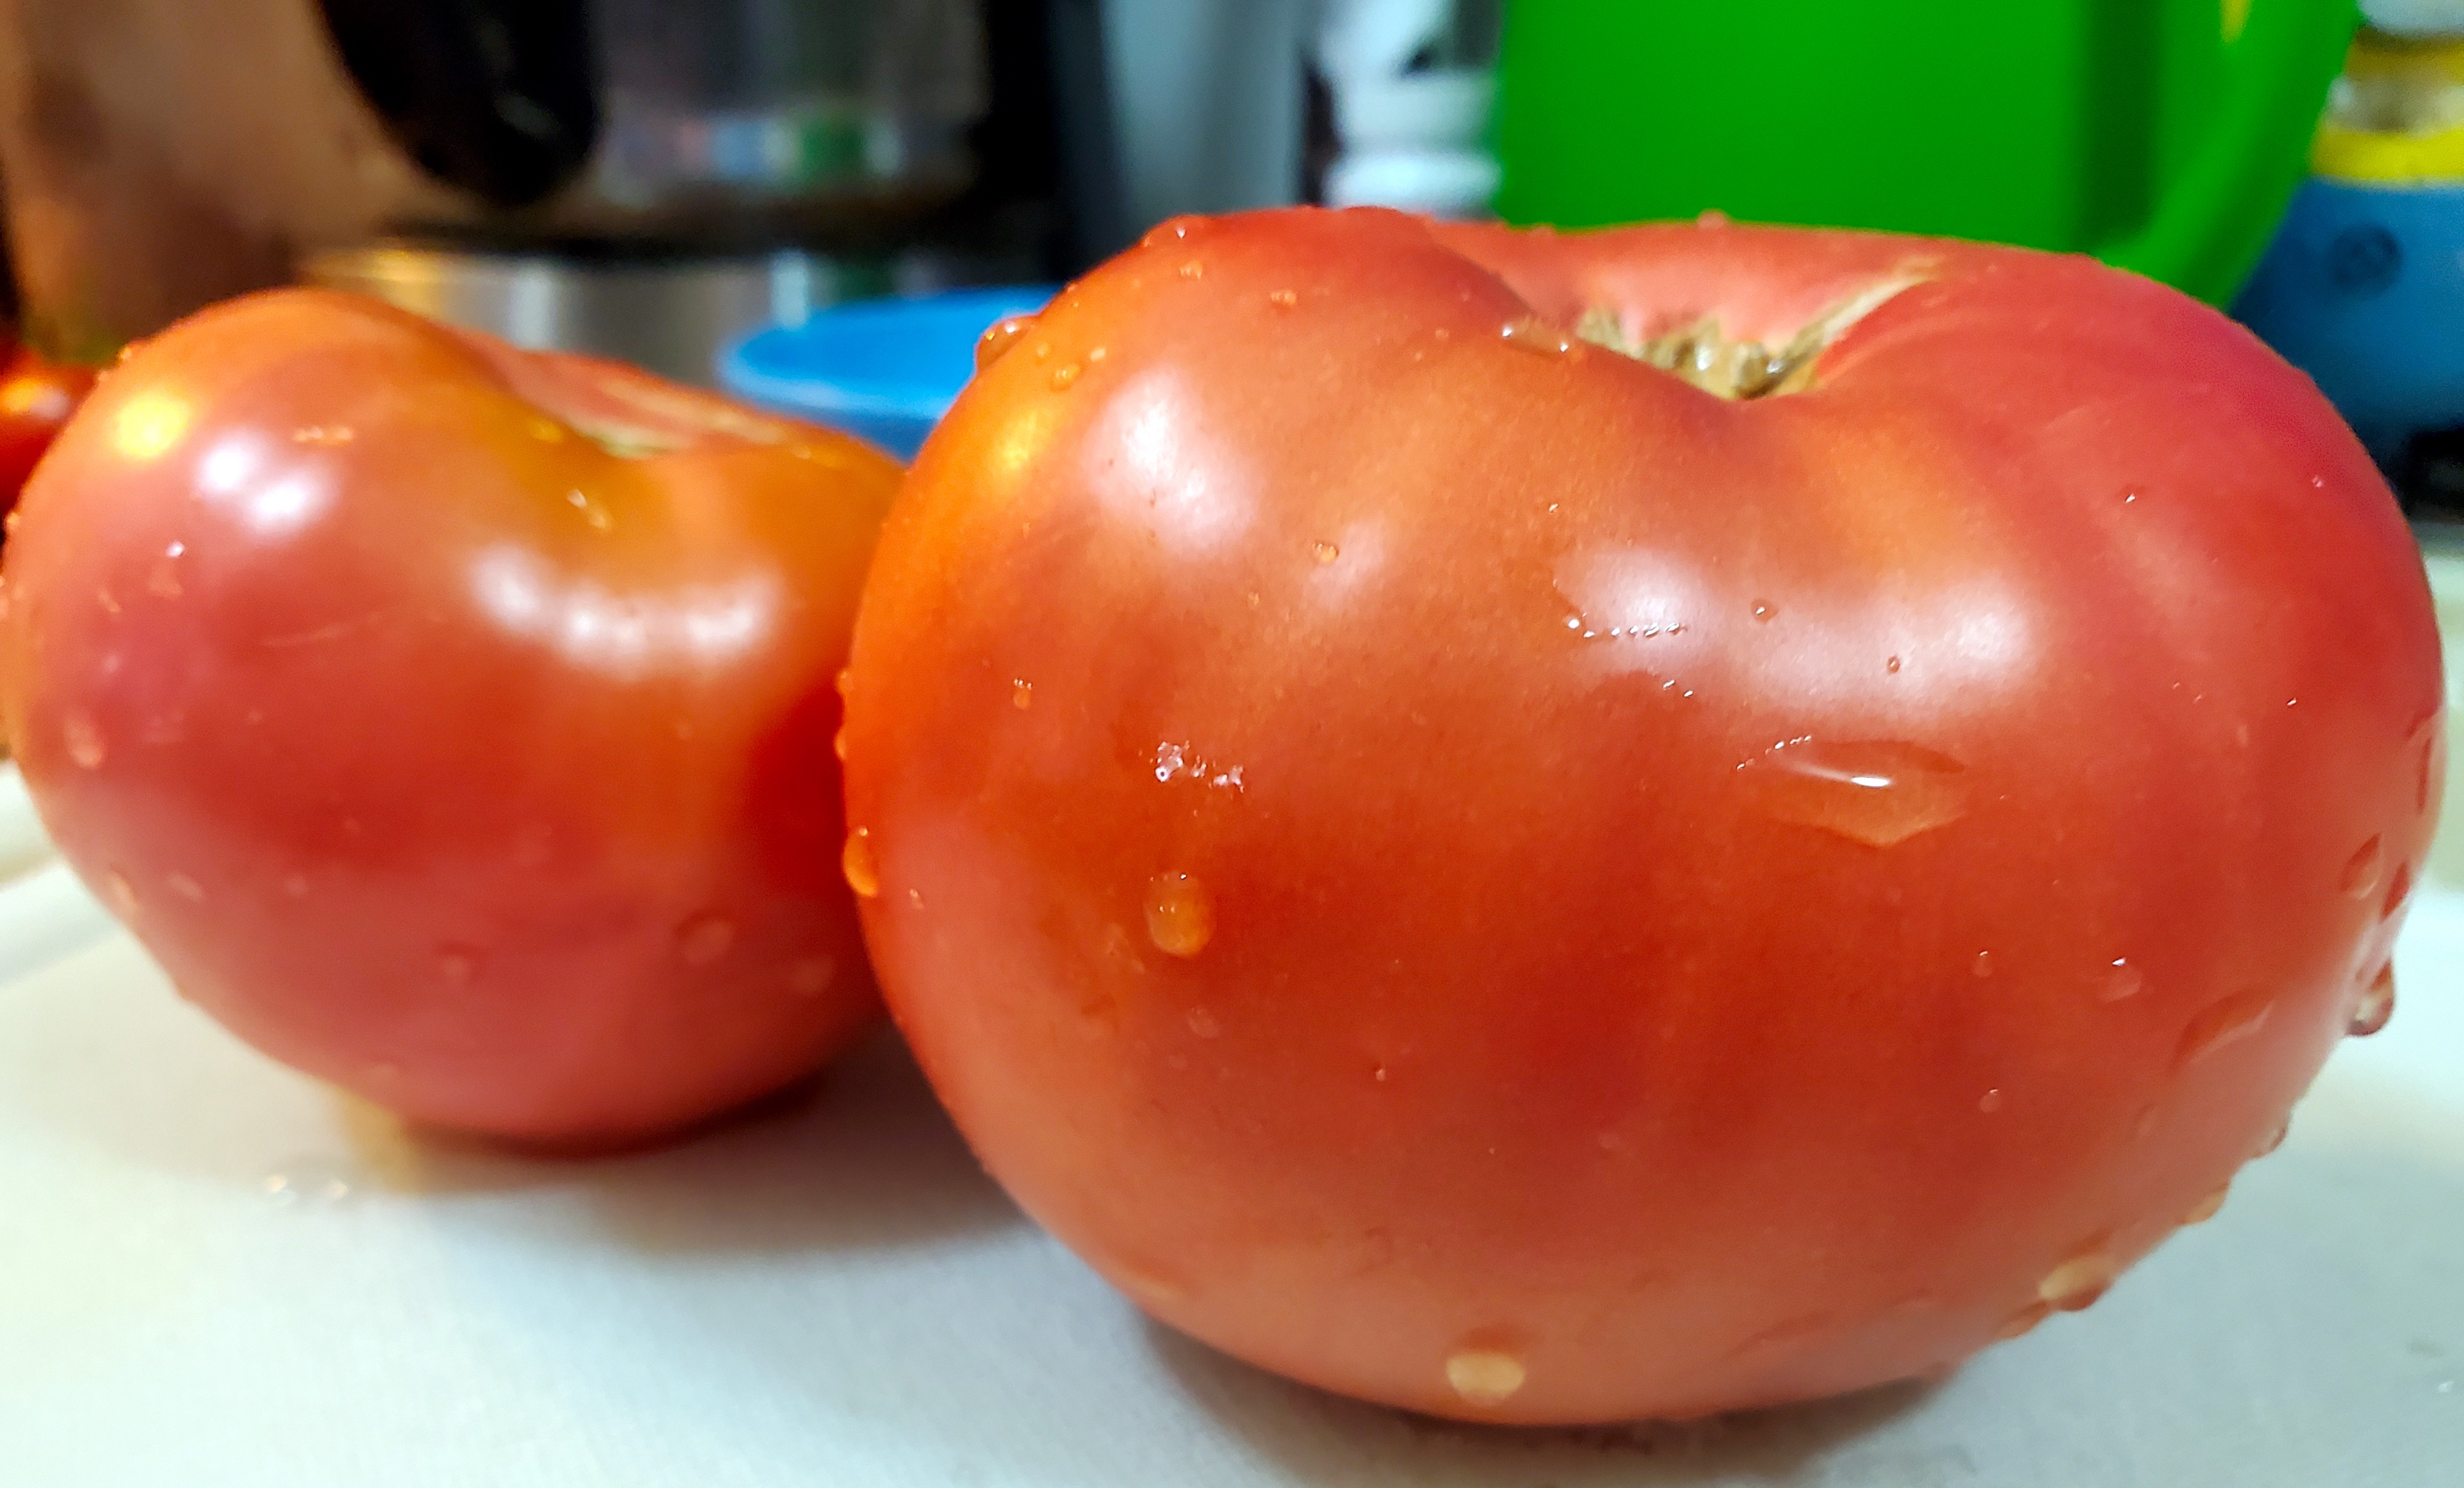 Two rinced Mortgage lifter tomatoes on a white cutting board